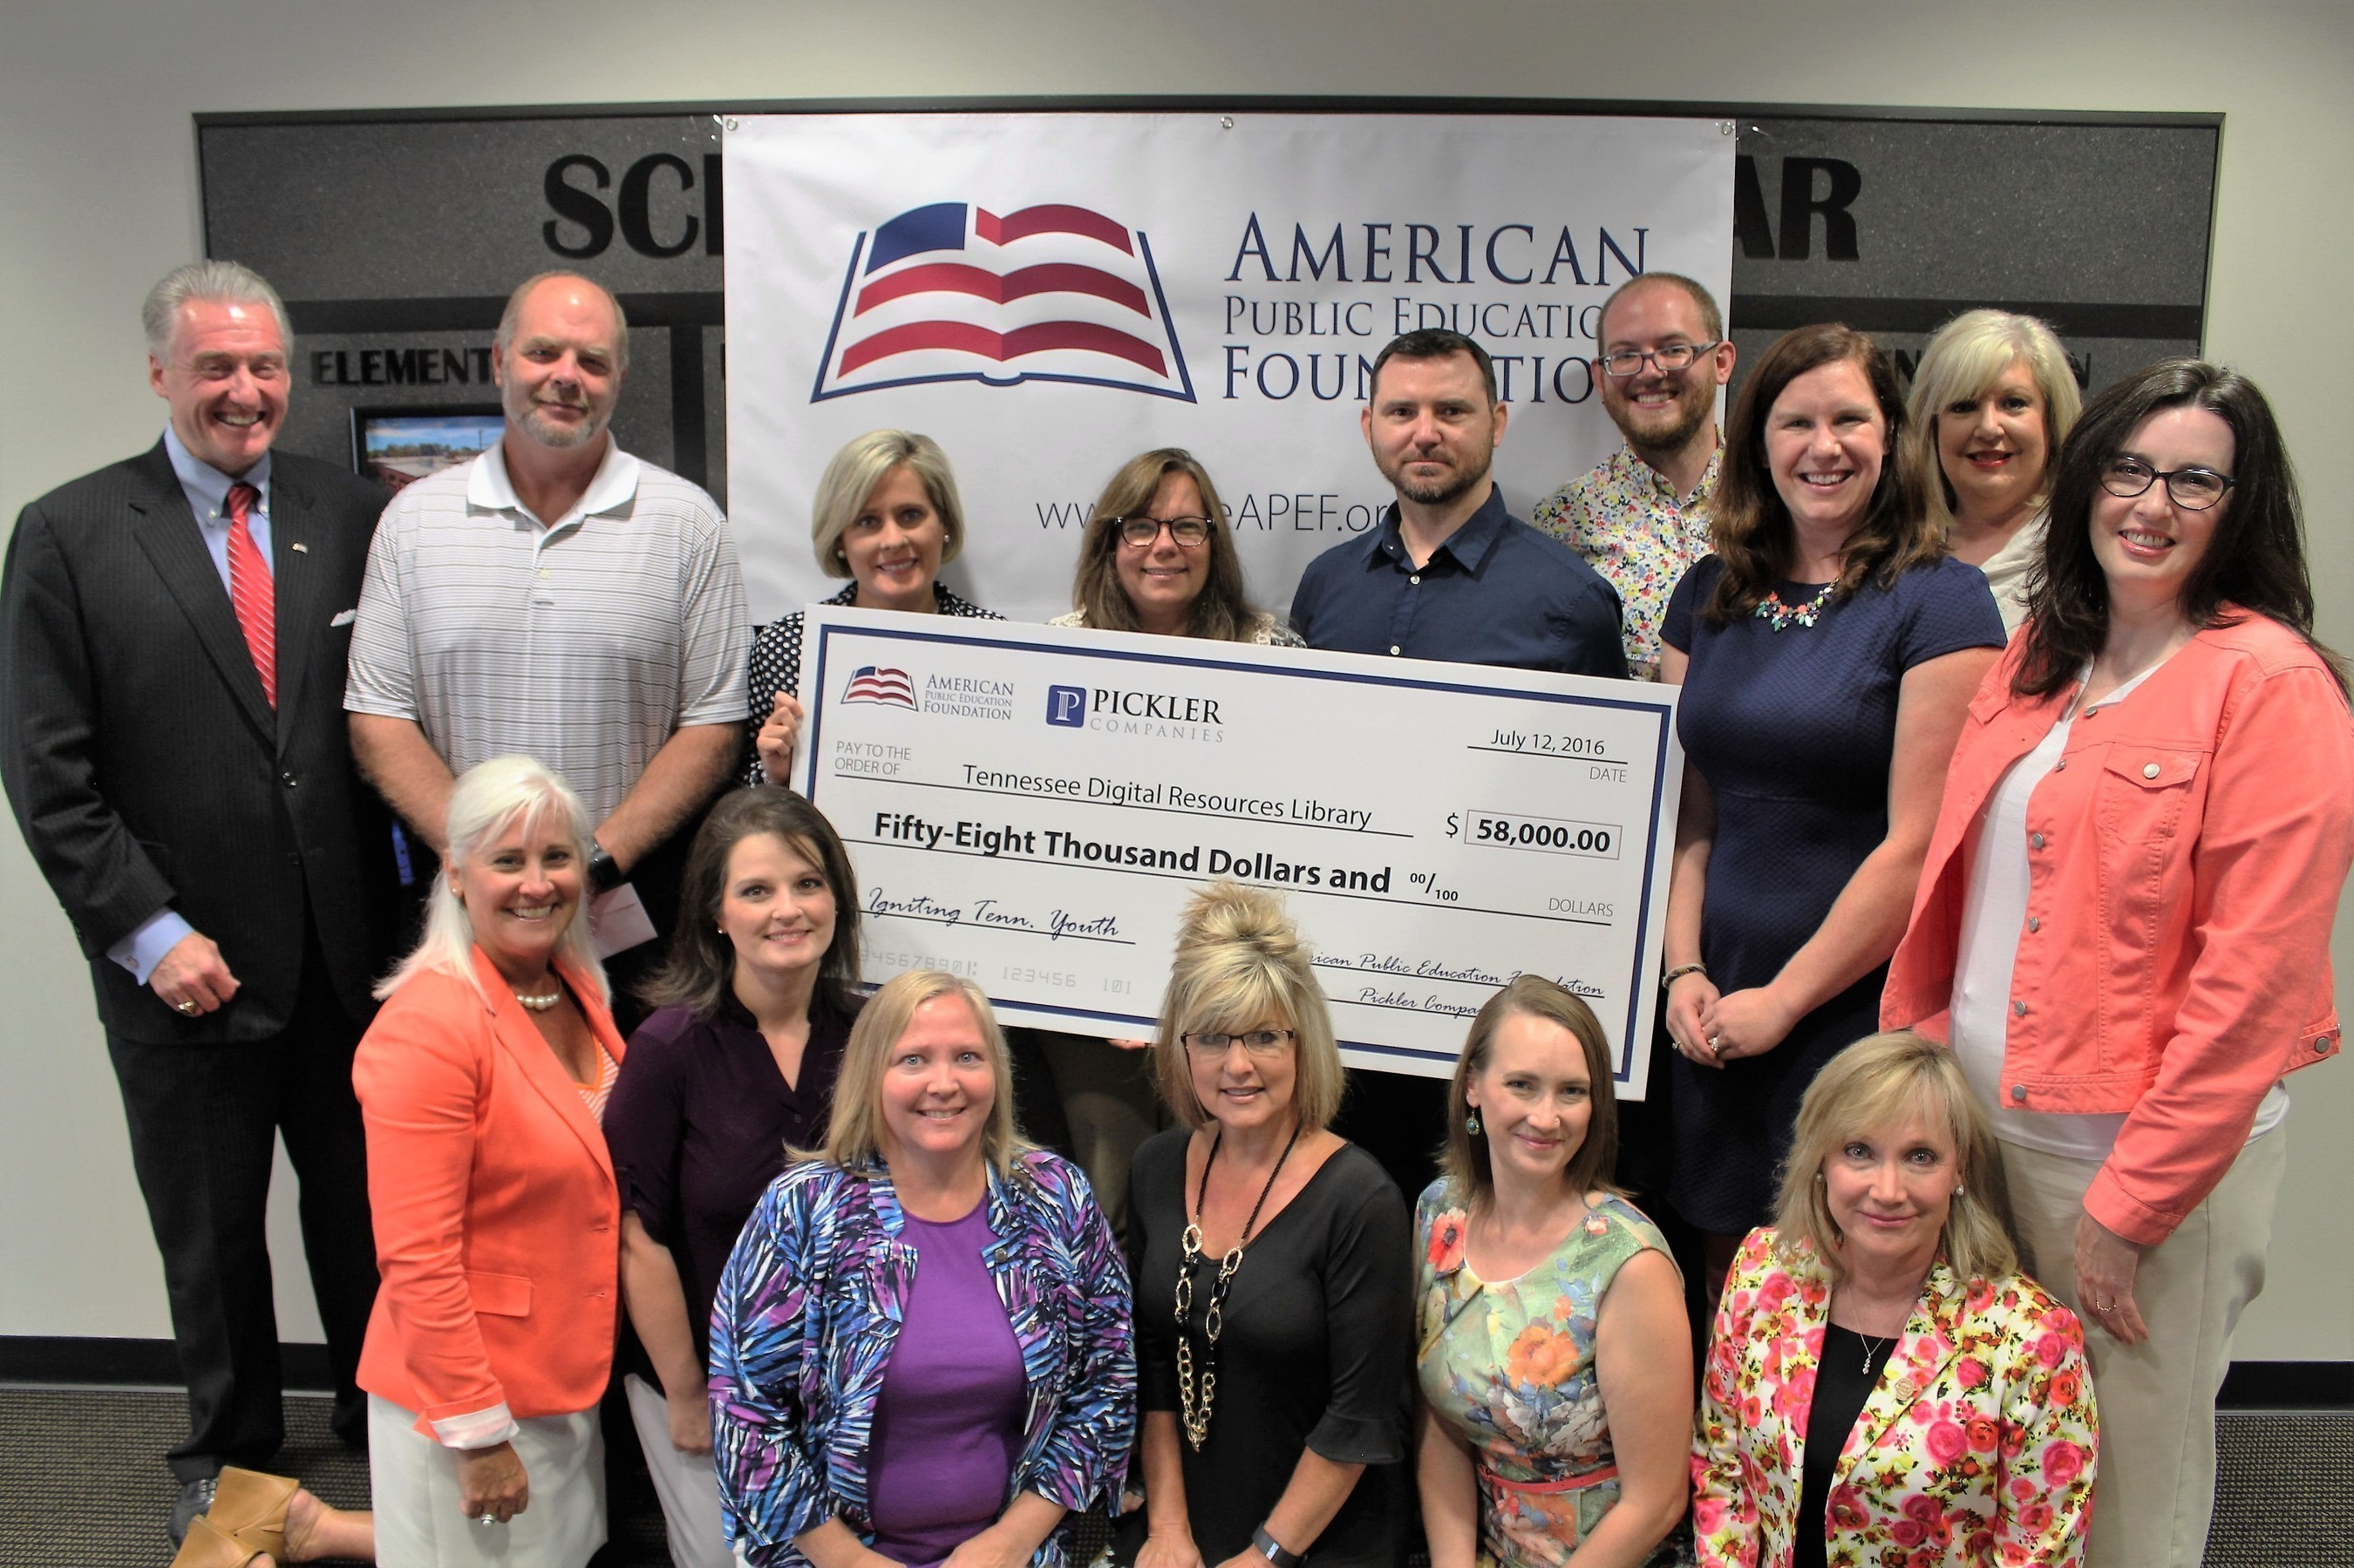 David Pickler, J.D., President, American Public Education Foundation (top left), presents a $58,000 check and iPad Air 2s to the 58 Tennessee high school teachers (partial group shown) who curated digital content for the Tennessee Digital Resources Library. Also shown (lower left) is Tammy Grissom, Ed.D., Executive Director, Tennessee School Boards Association.